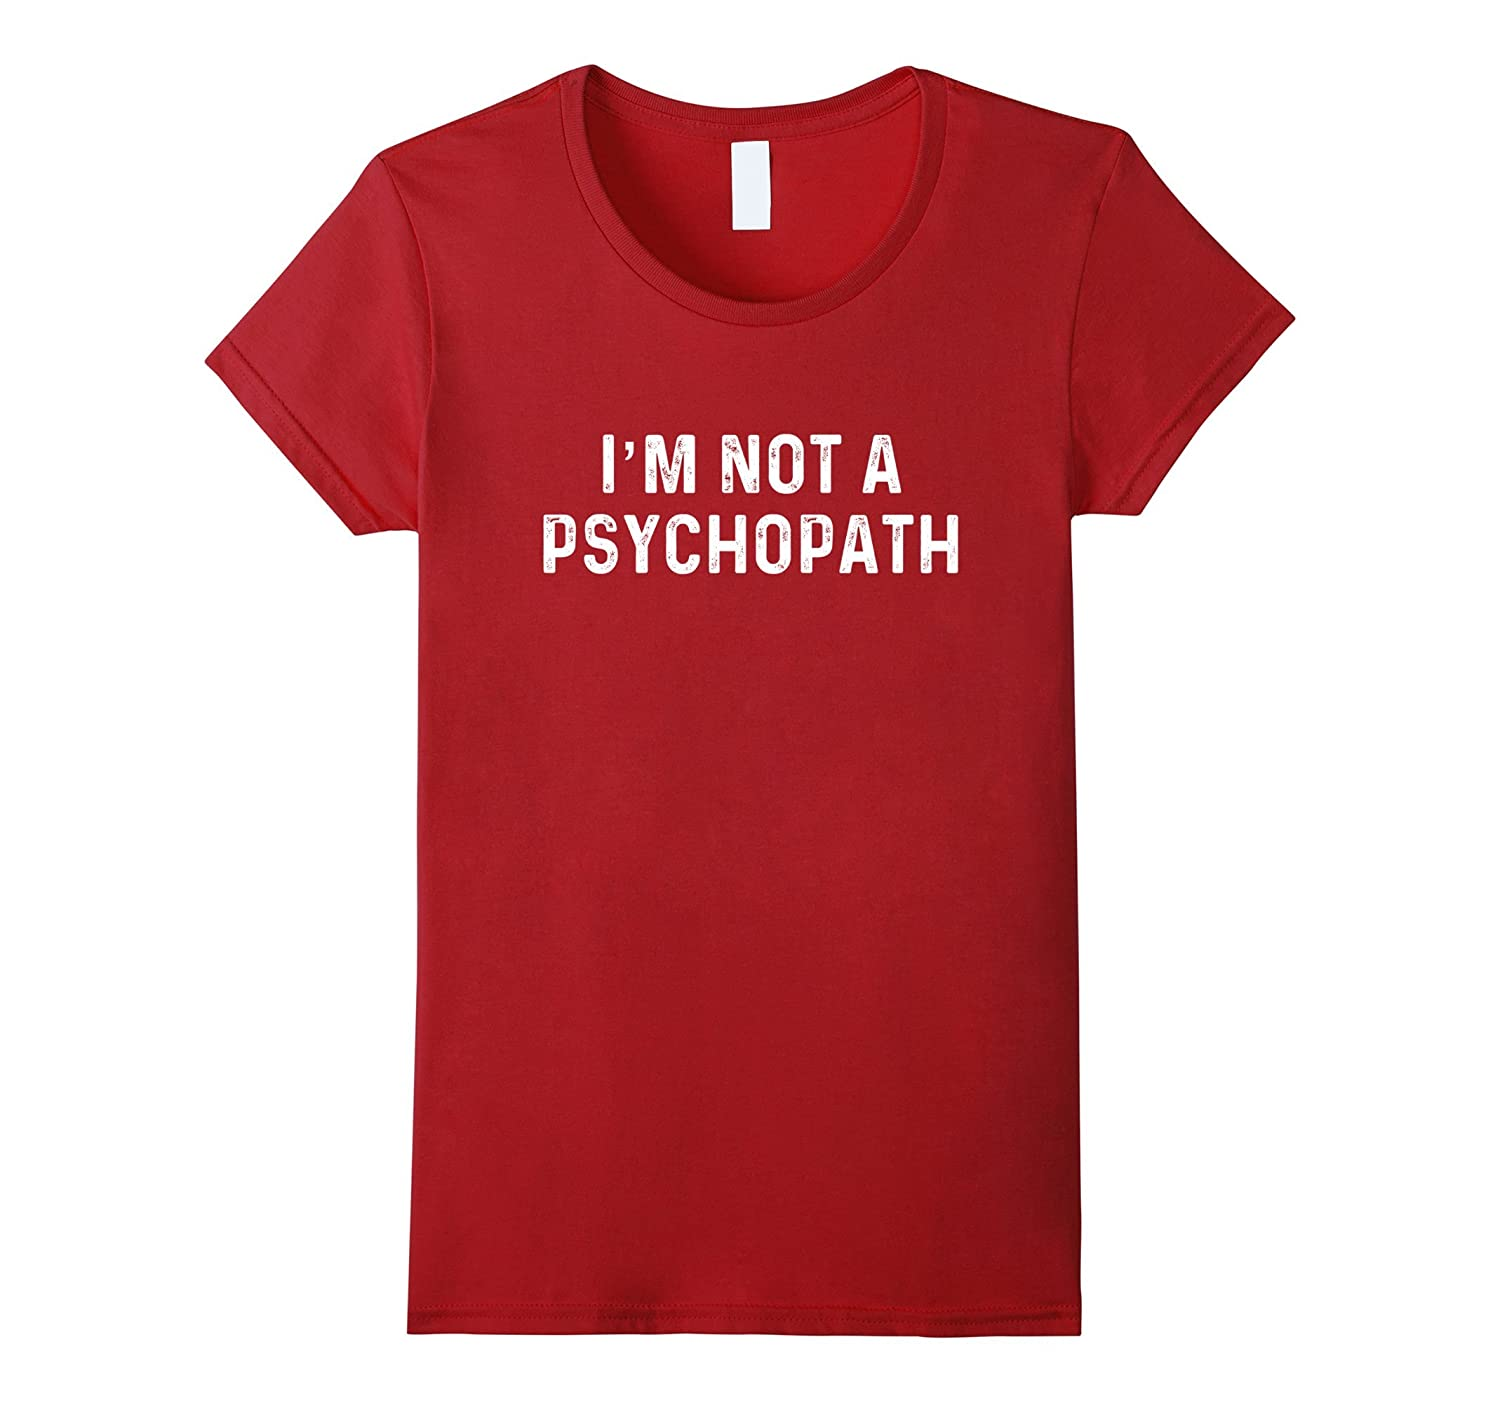 Not Psychopath Funny Socially Cranberry-Tovacu